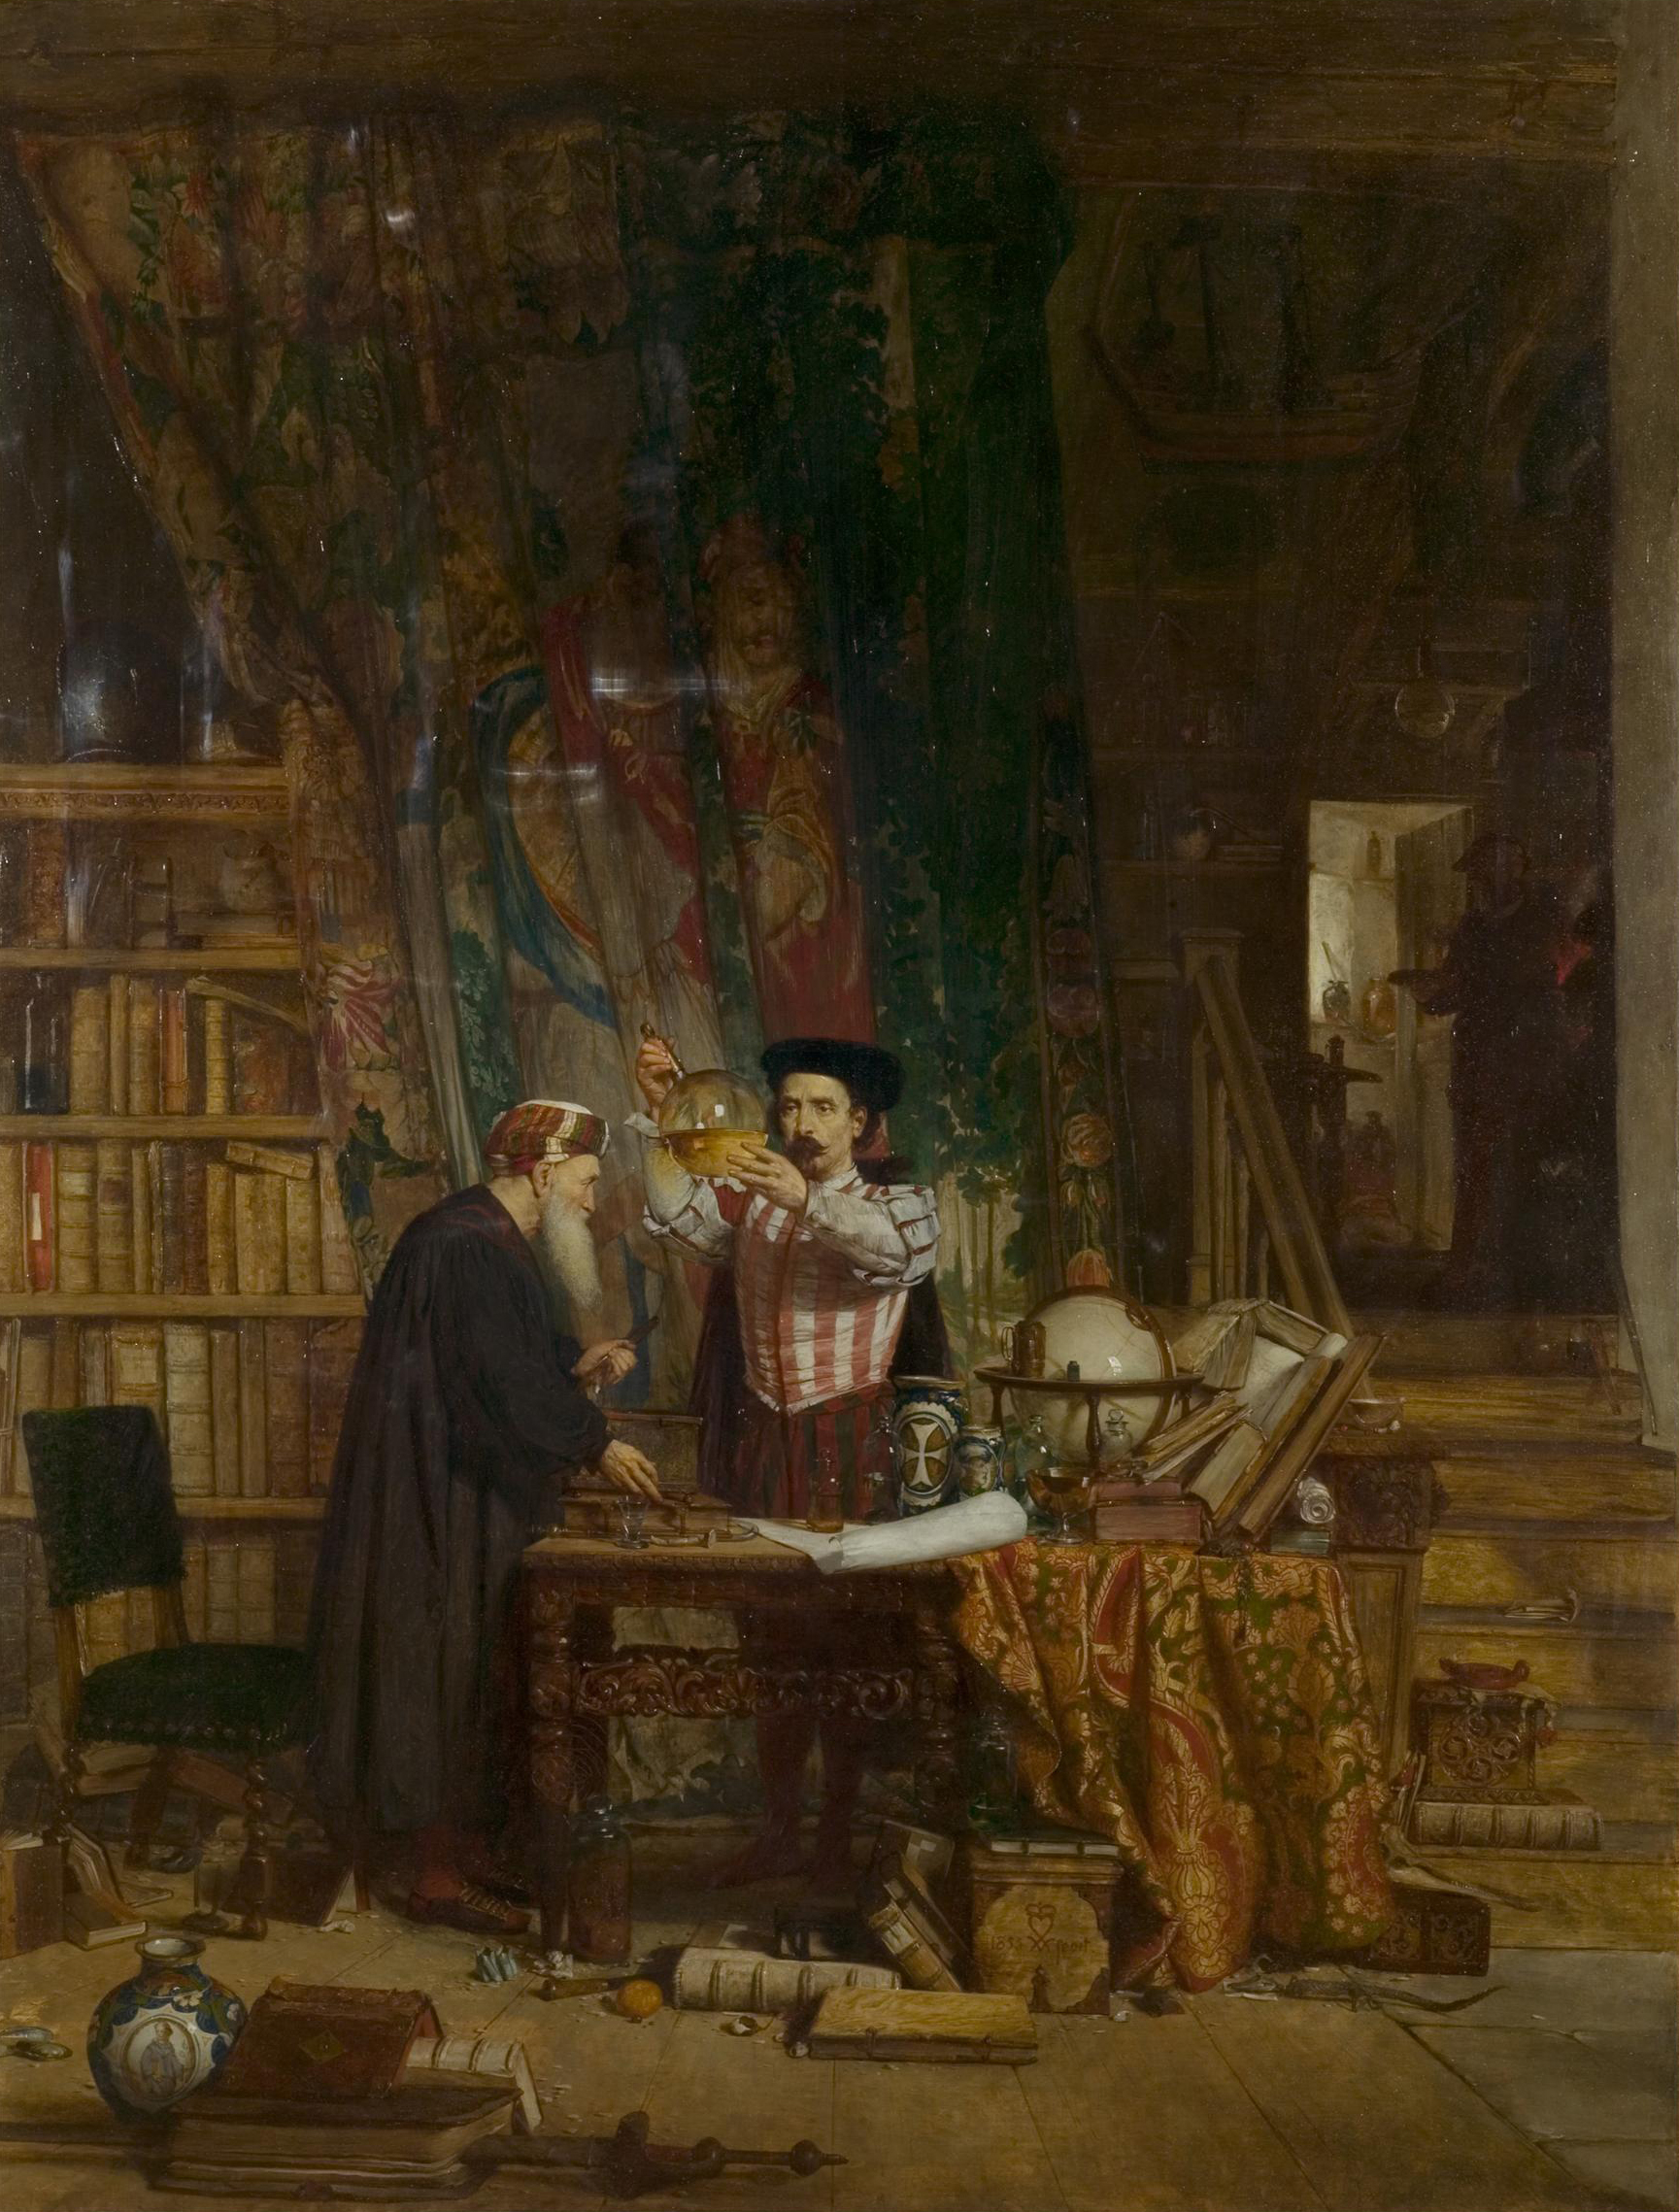 The Alchemist by William Fetter Douglas, 1853.